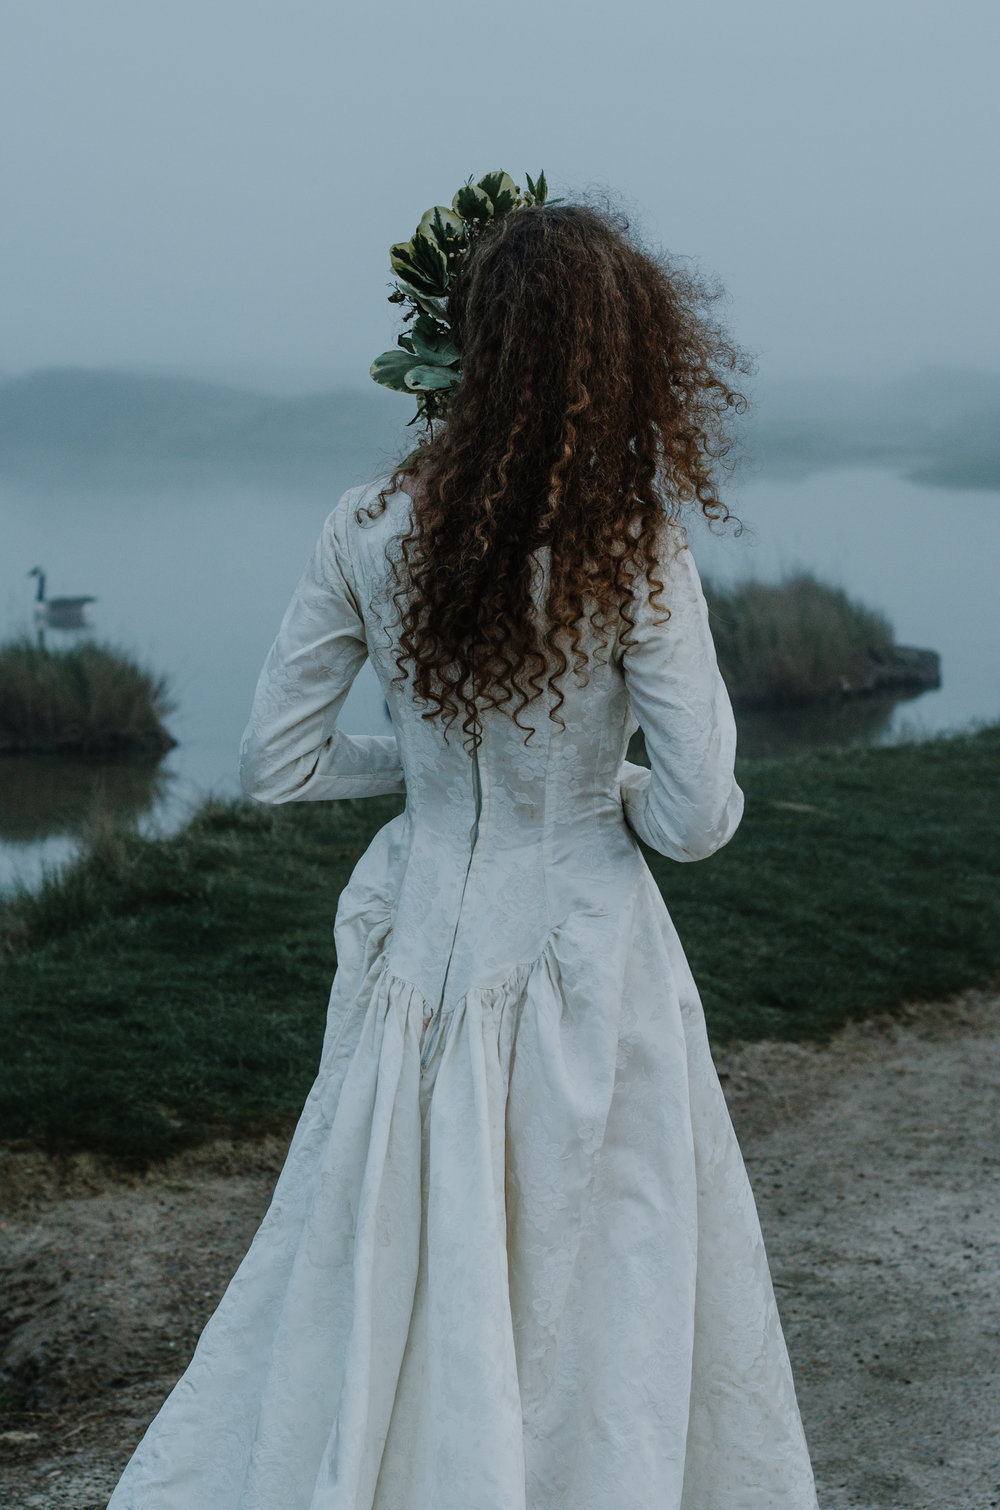 Bridal - Cuckmere Haven 2018 - Aiste Saulyte Photography-114.jpg